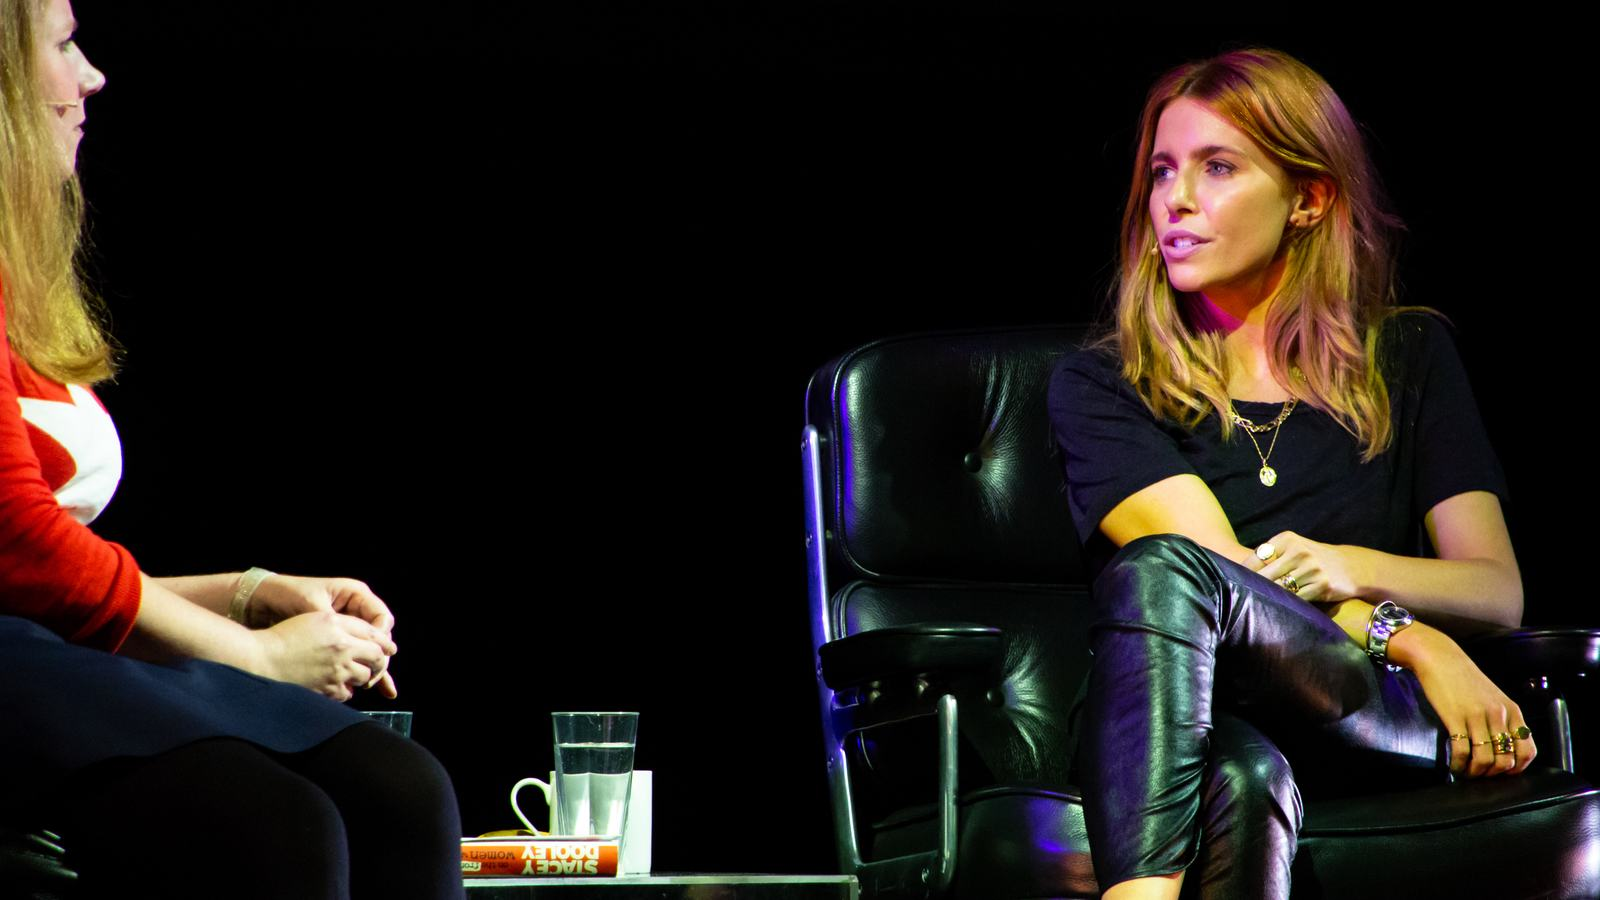 Stacey Dooley, documentary filmmaker and author